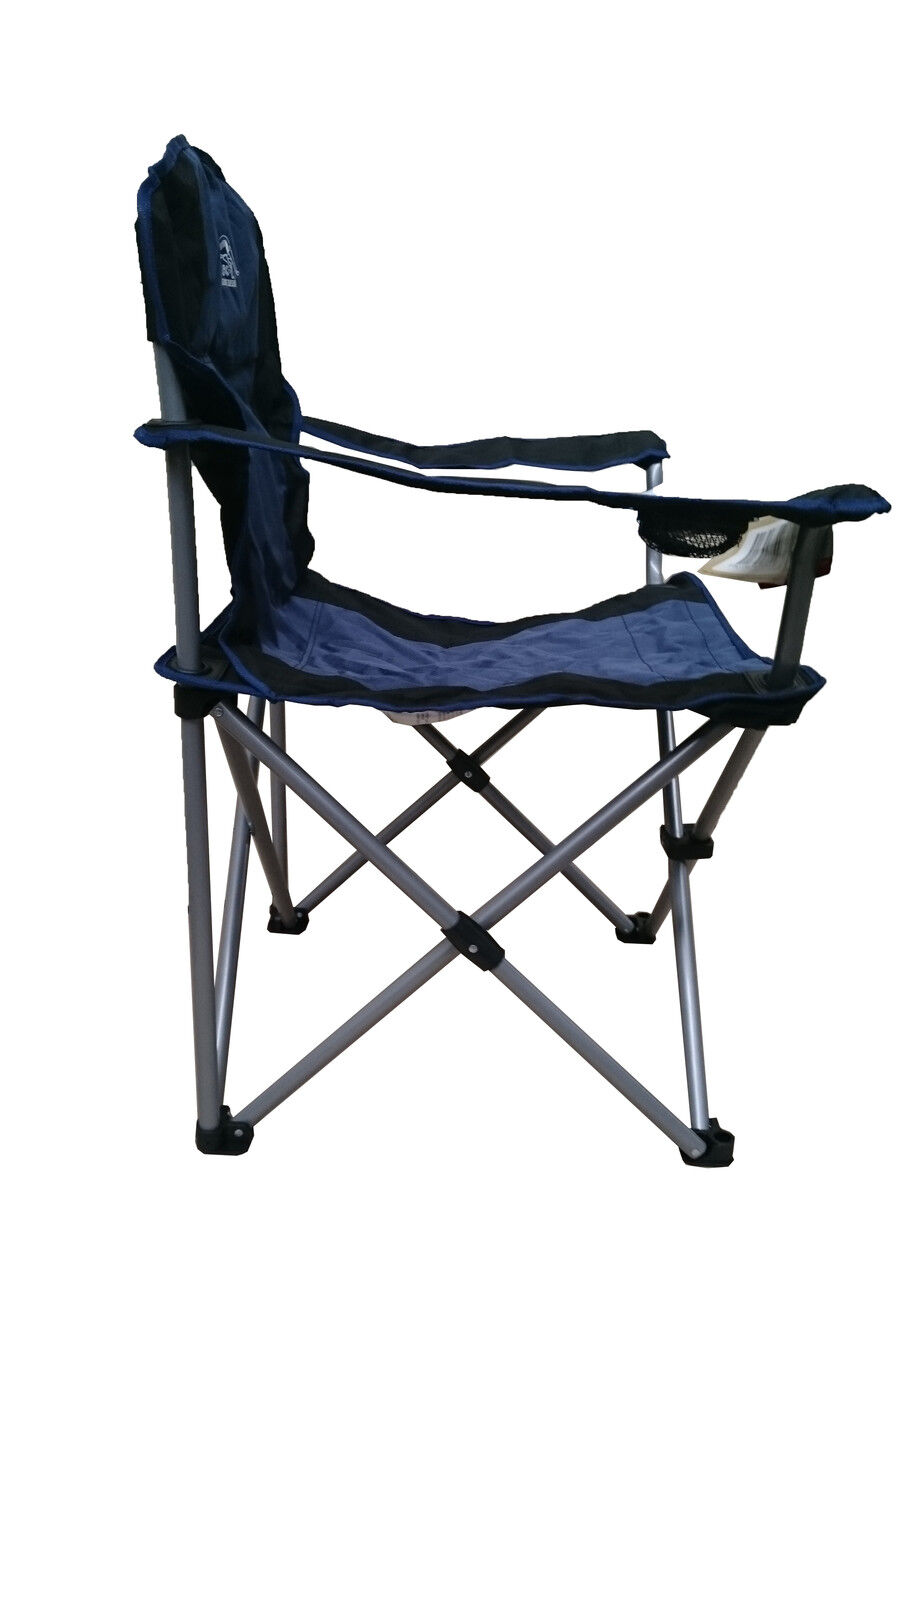 Outback Big Man Folding Camping Chair 150 KG Very fortable Strong picnic camp